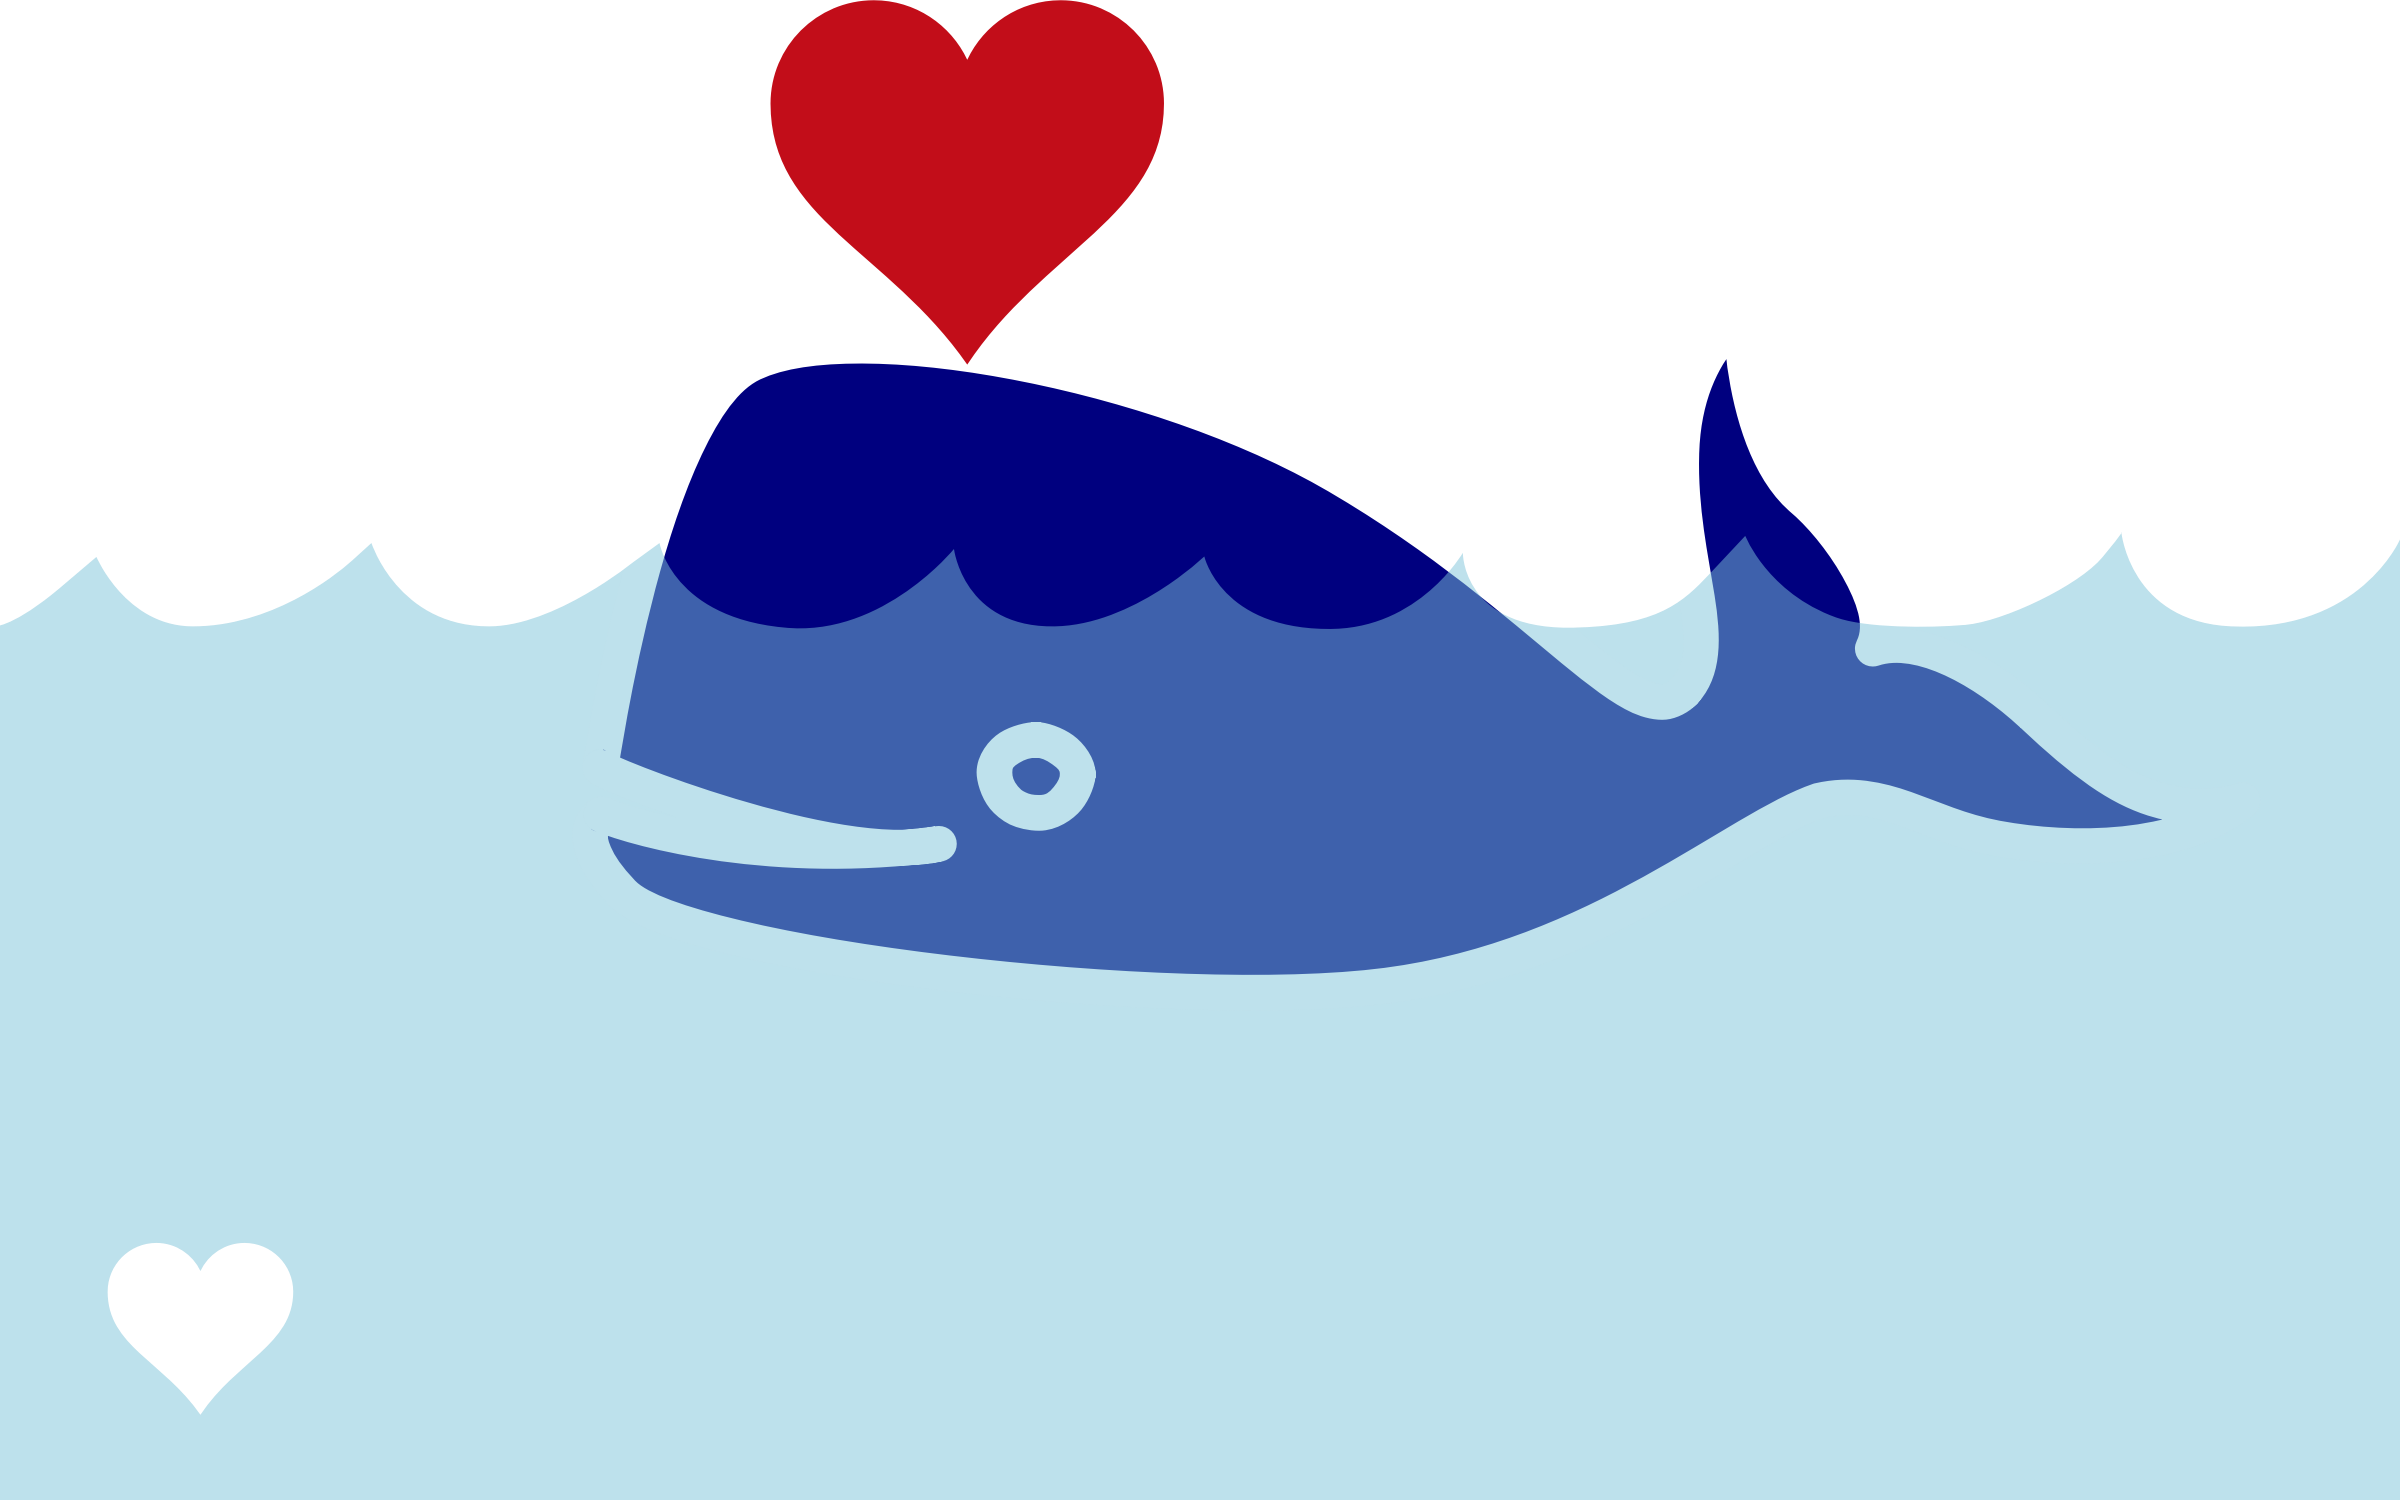 https://openclipart.org/image/2400px/svg_to_png/221592/Whale.png